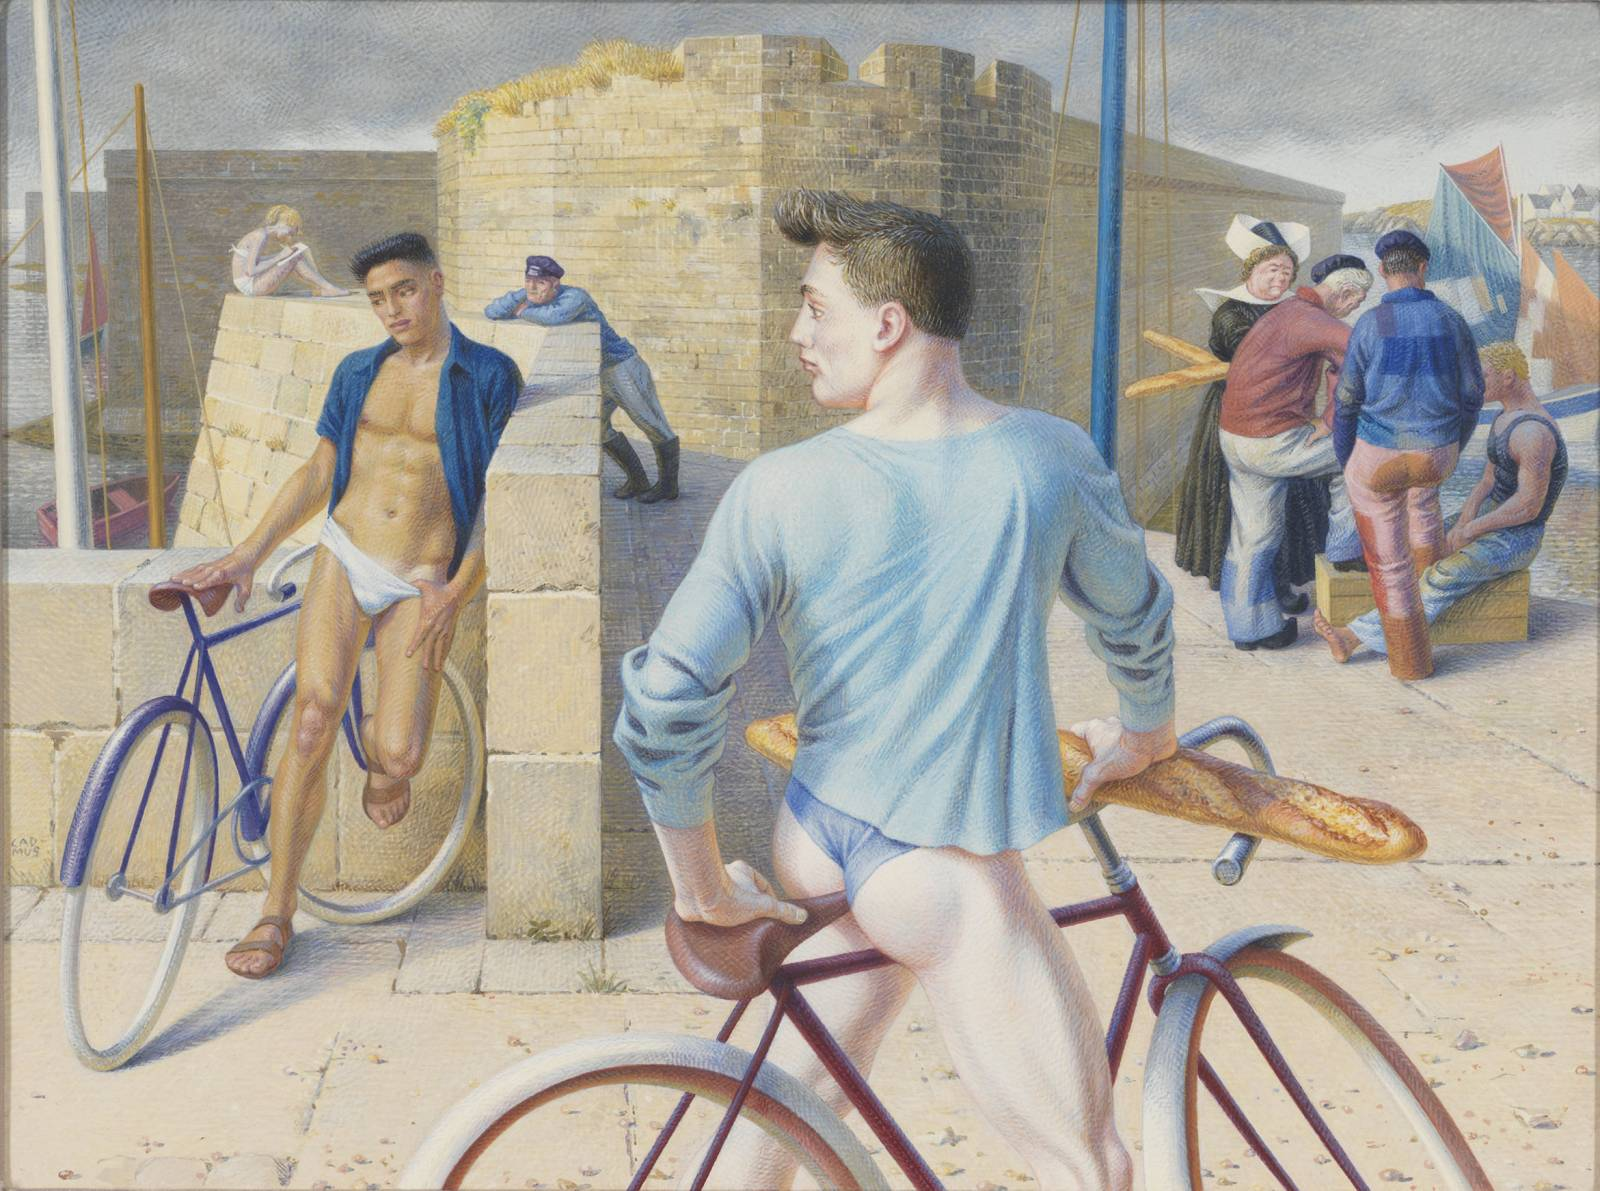 Paul Cadmus, Painting Gay Male Identity Into American Art